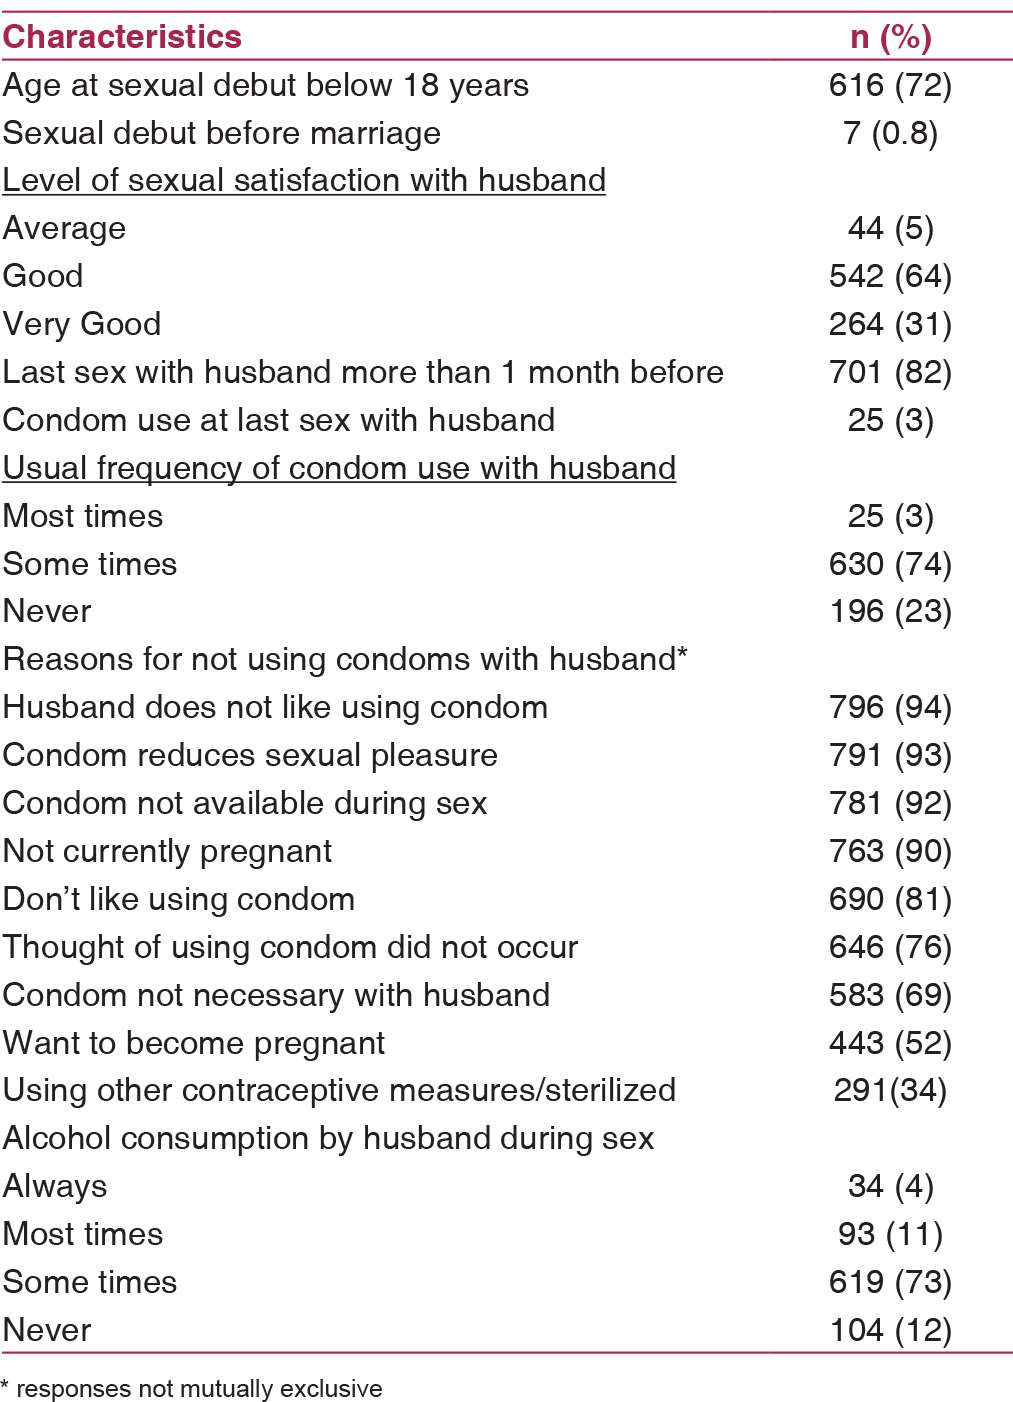 Table 2: Sexual behavior of wives of migrant workers (N=850)